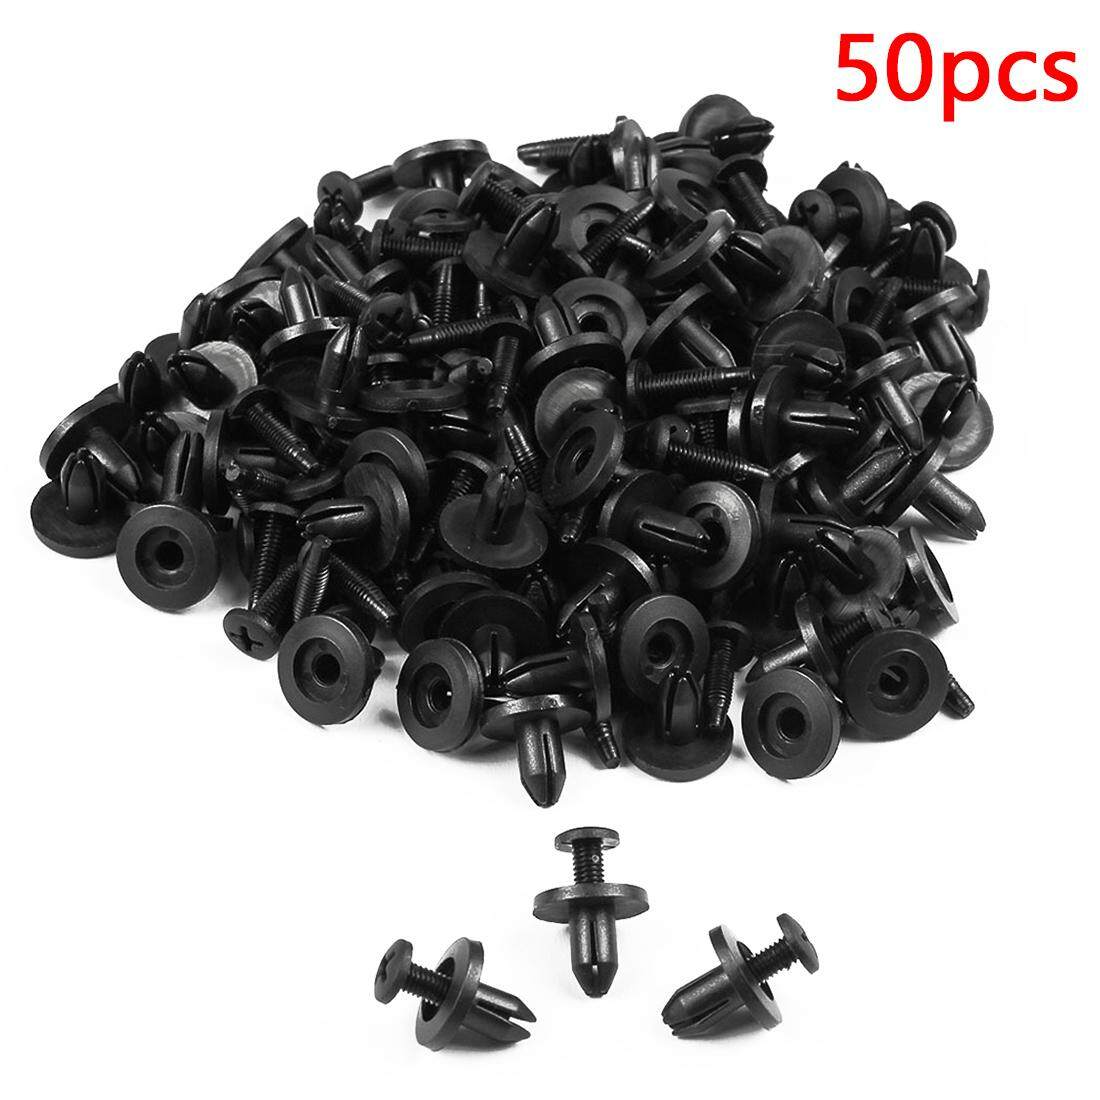 Clips Buy At Best Price In Malaysia Wiring Harness Alligator Fence 50pcs 8mm Plastic Rivet Automotive Fasteners Car Door Bumper Cover Fender Fixed Clip Styling